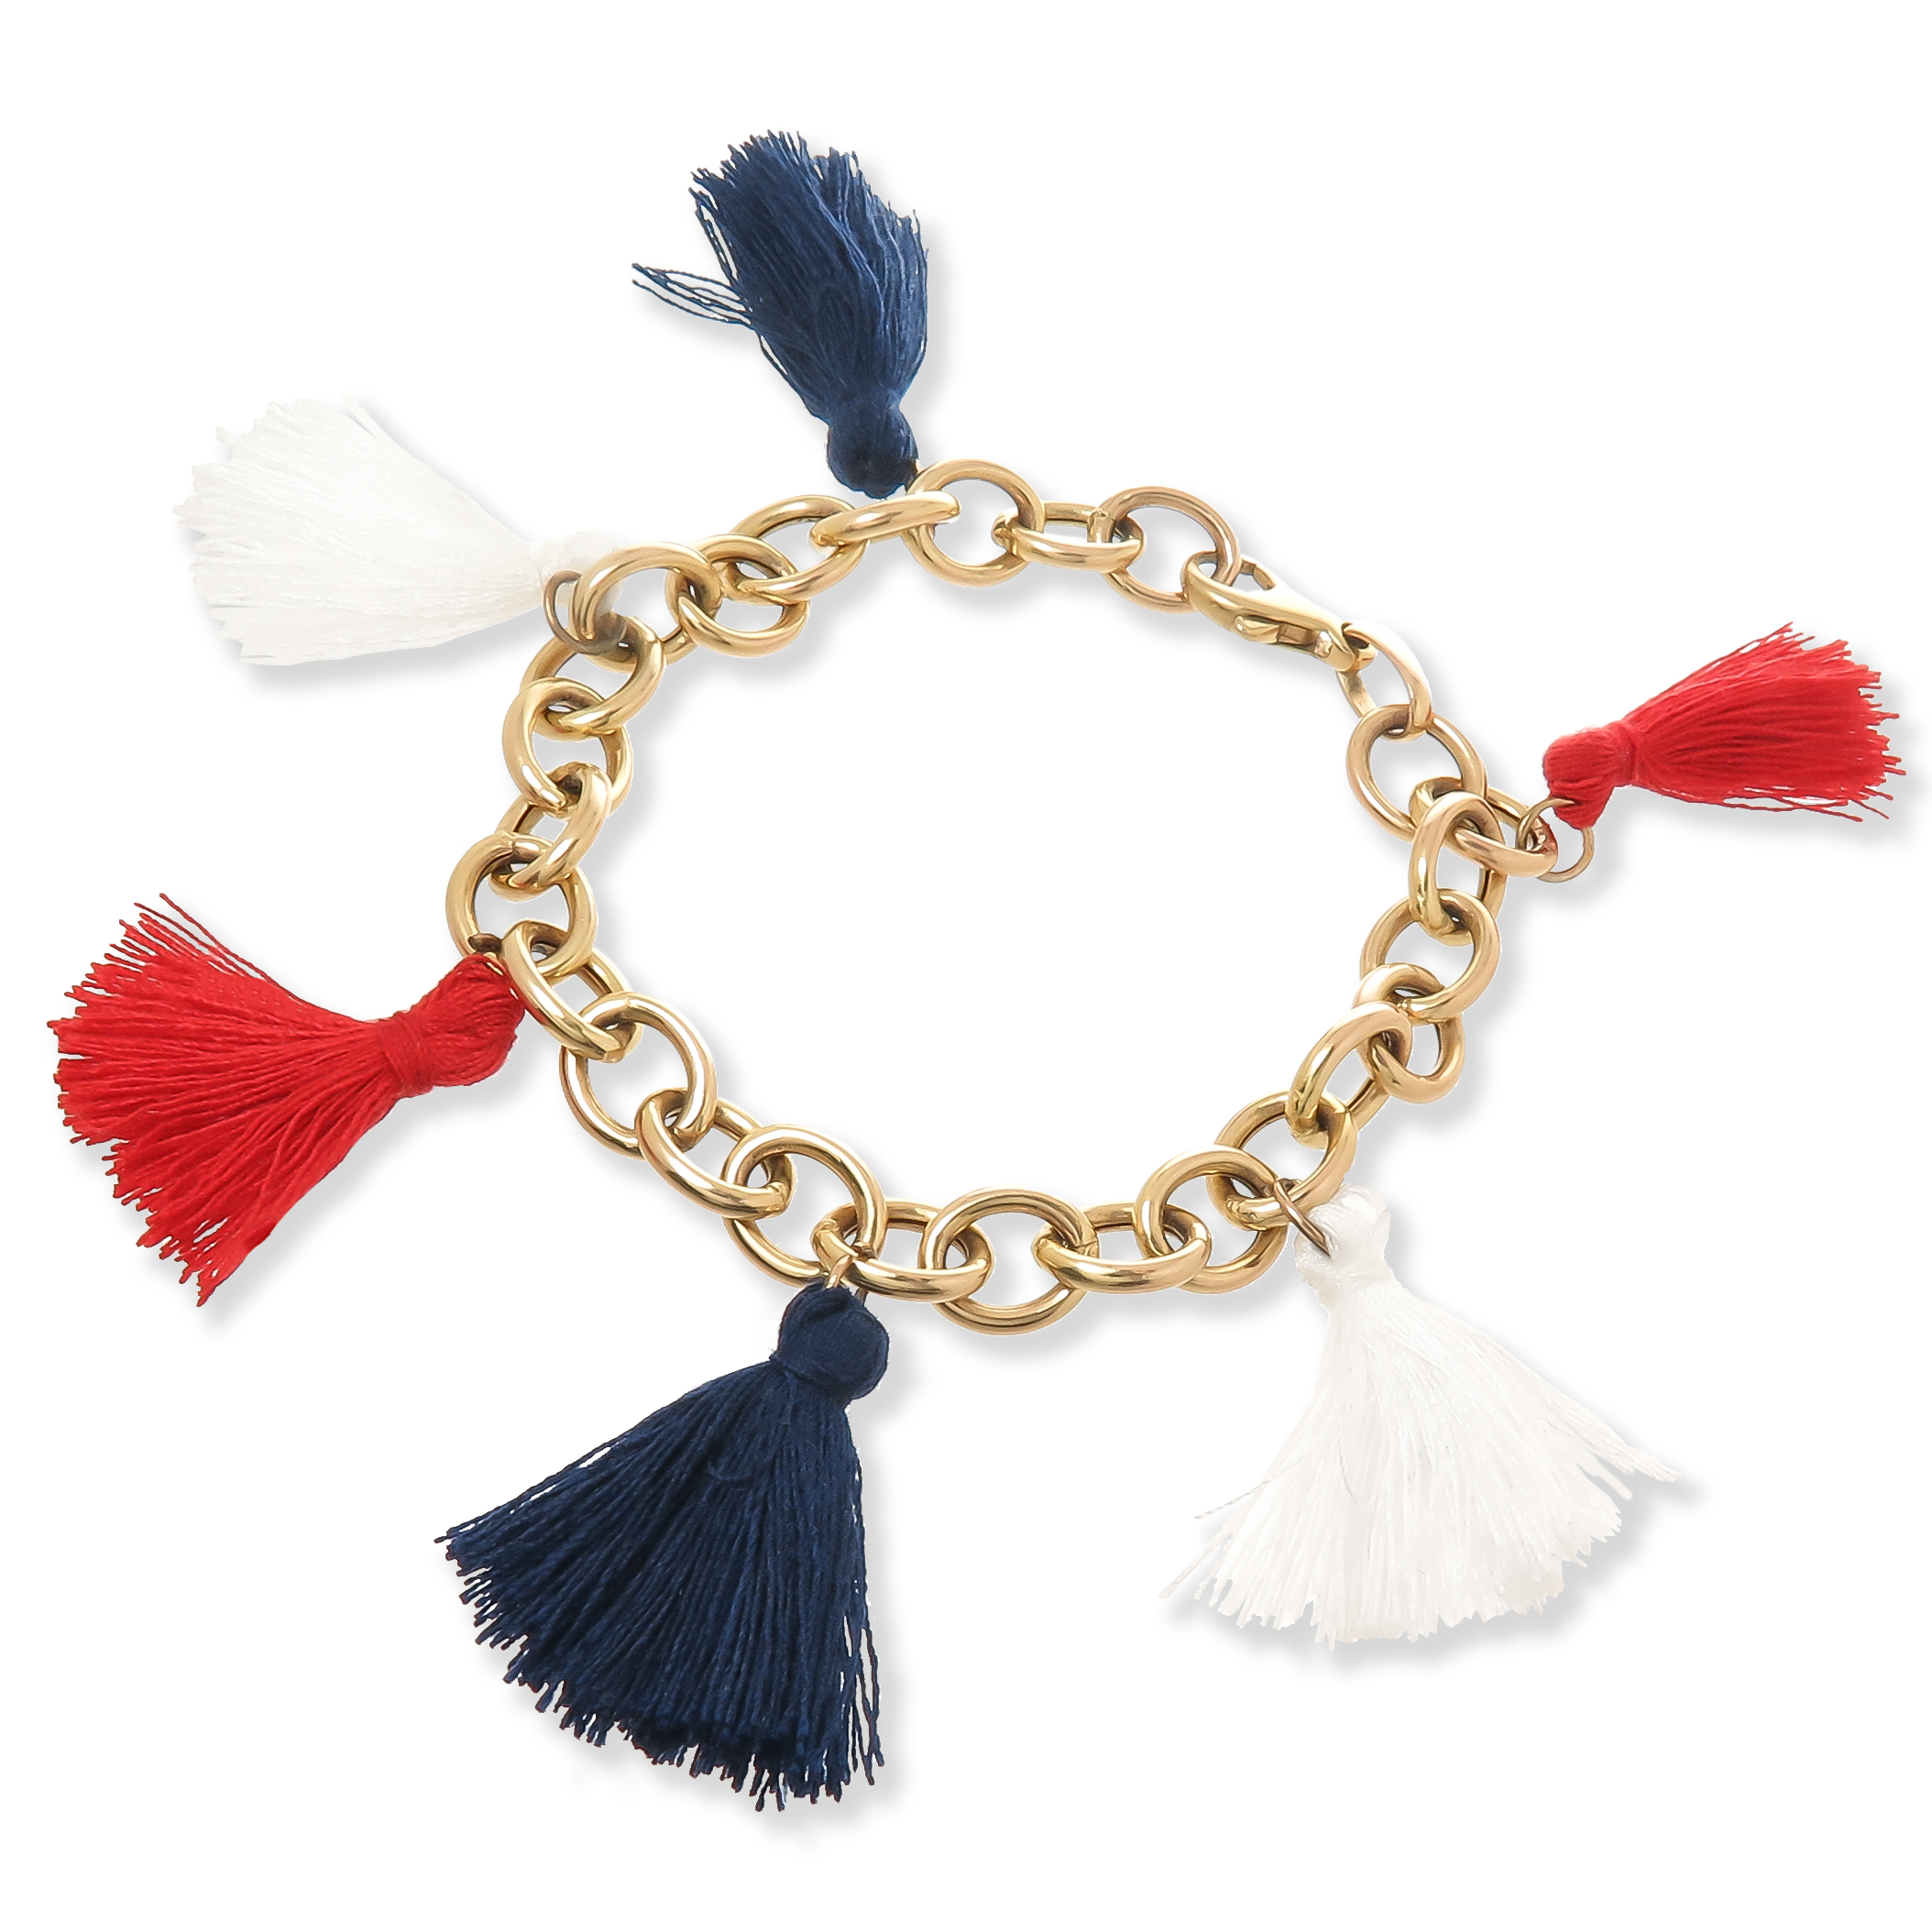 14k-yellow-gold-vintage-link-bracelet-with-red-white-and-blue-tassles-kerry-gilligan.jpg